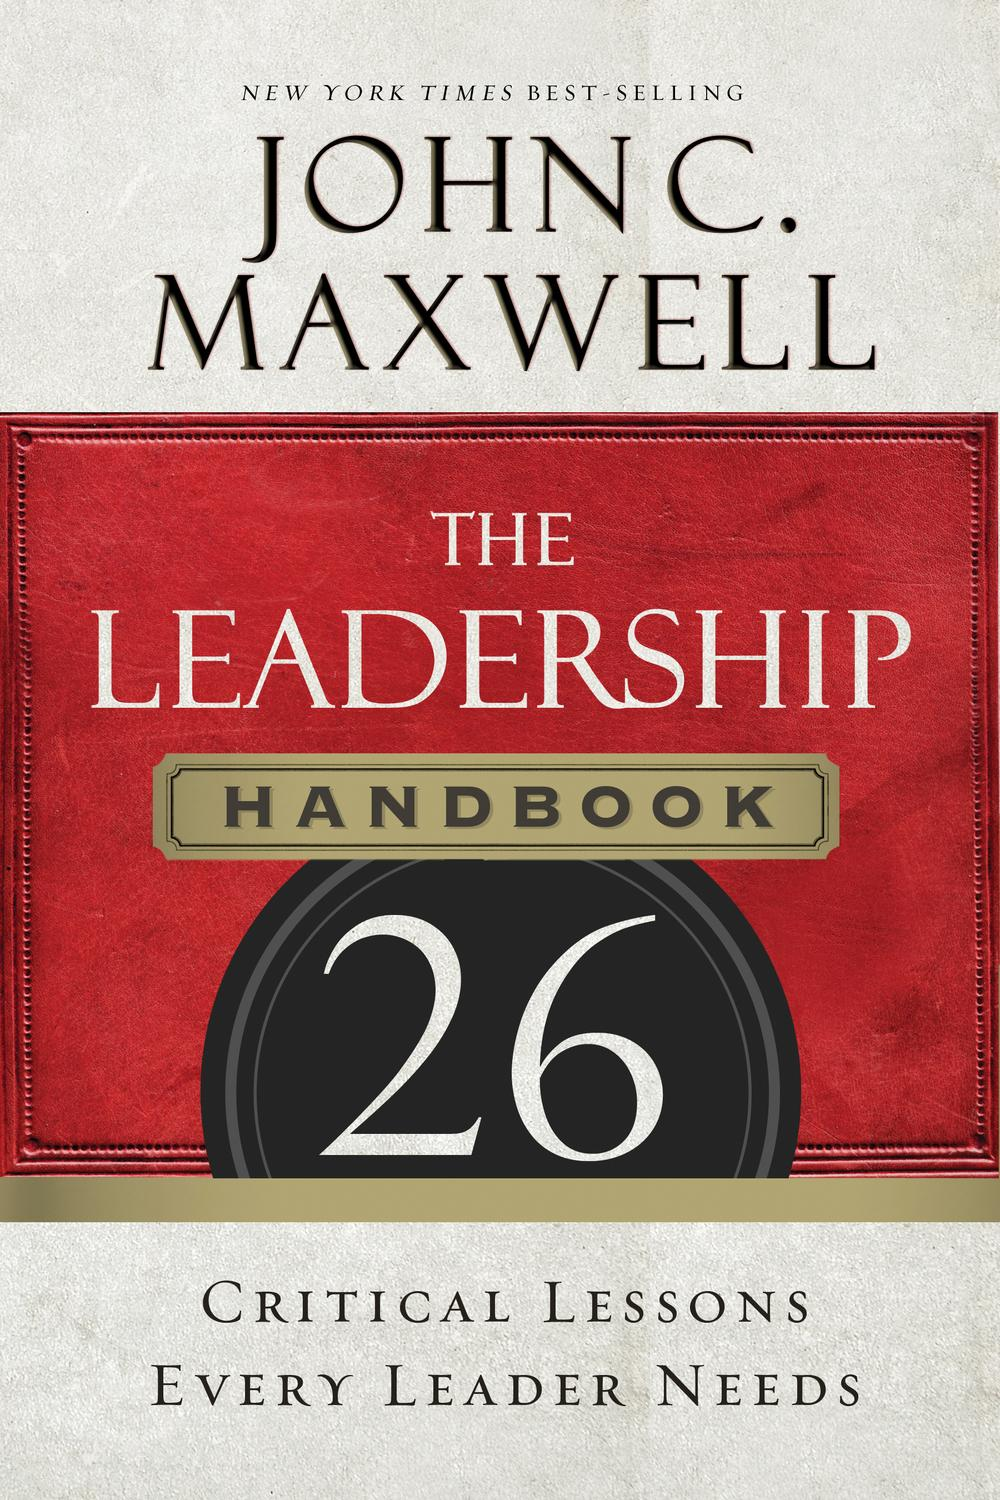 Pdf The Leadership Handbook By John C Maxwell Perlego